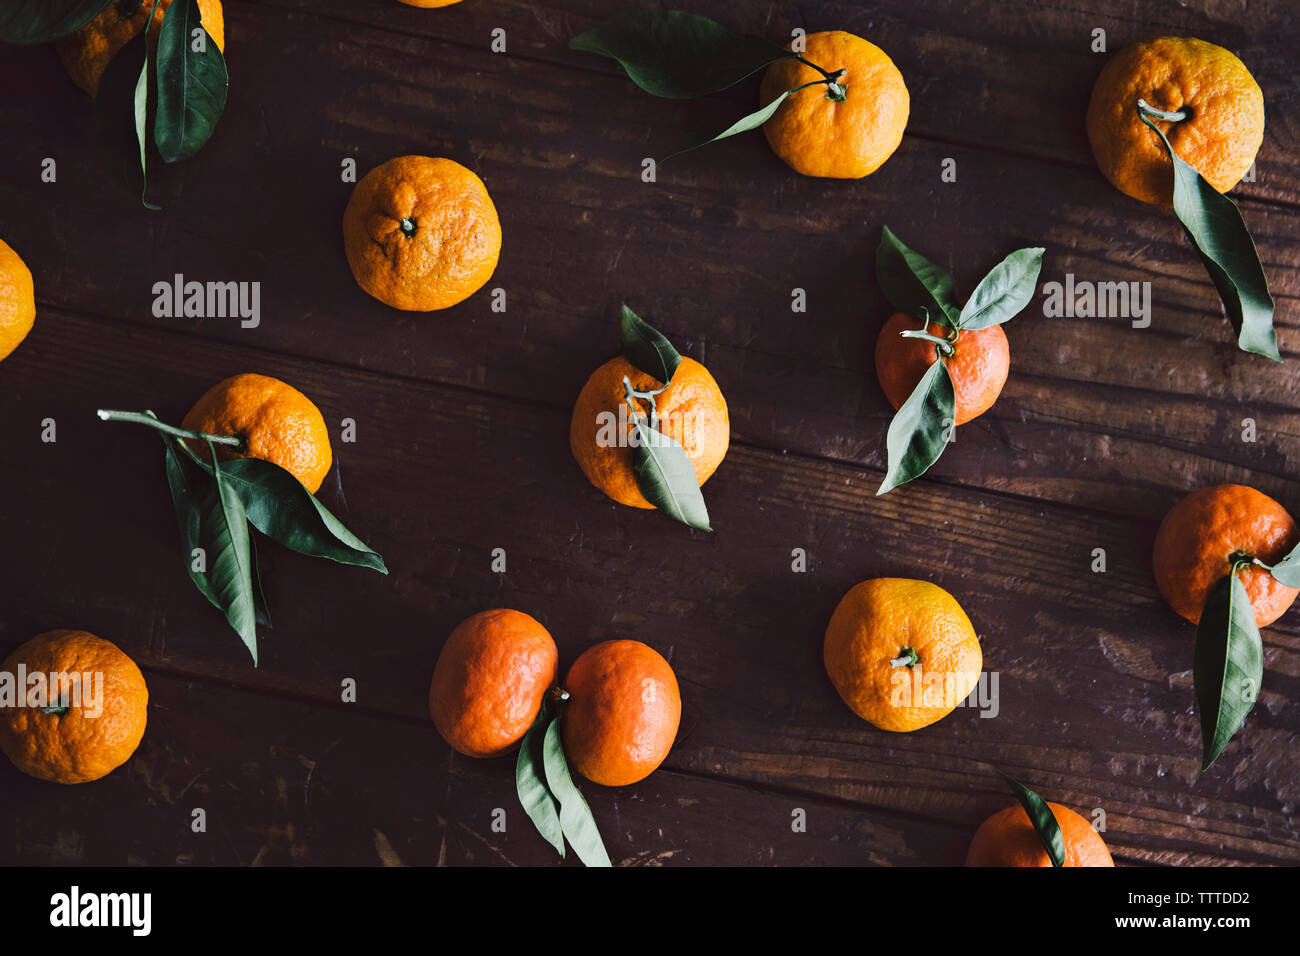 Overhead view of oranges on wooden table Stock Photo